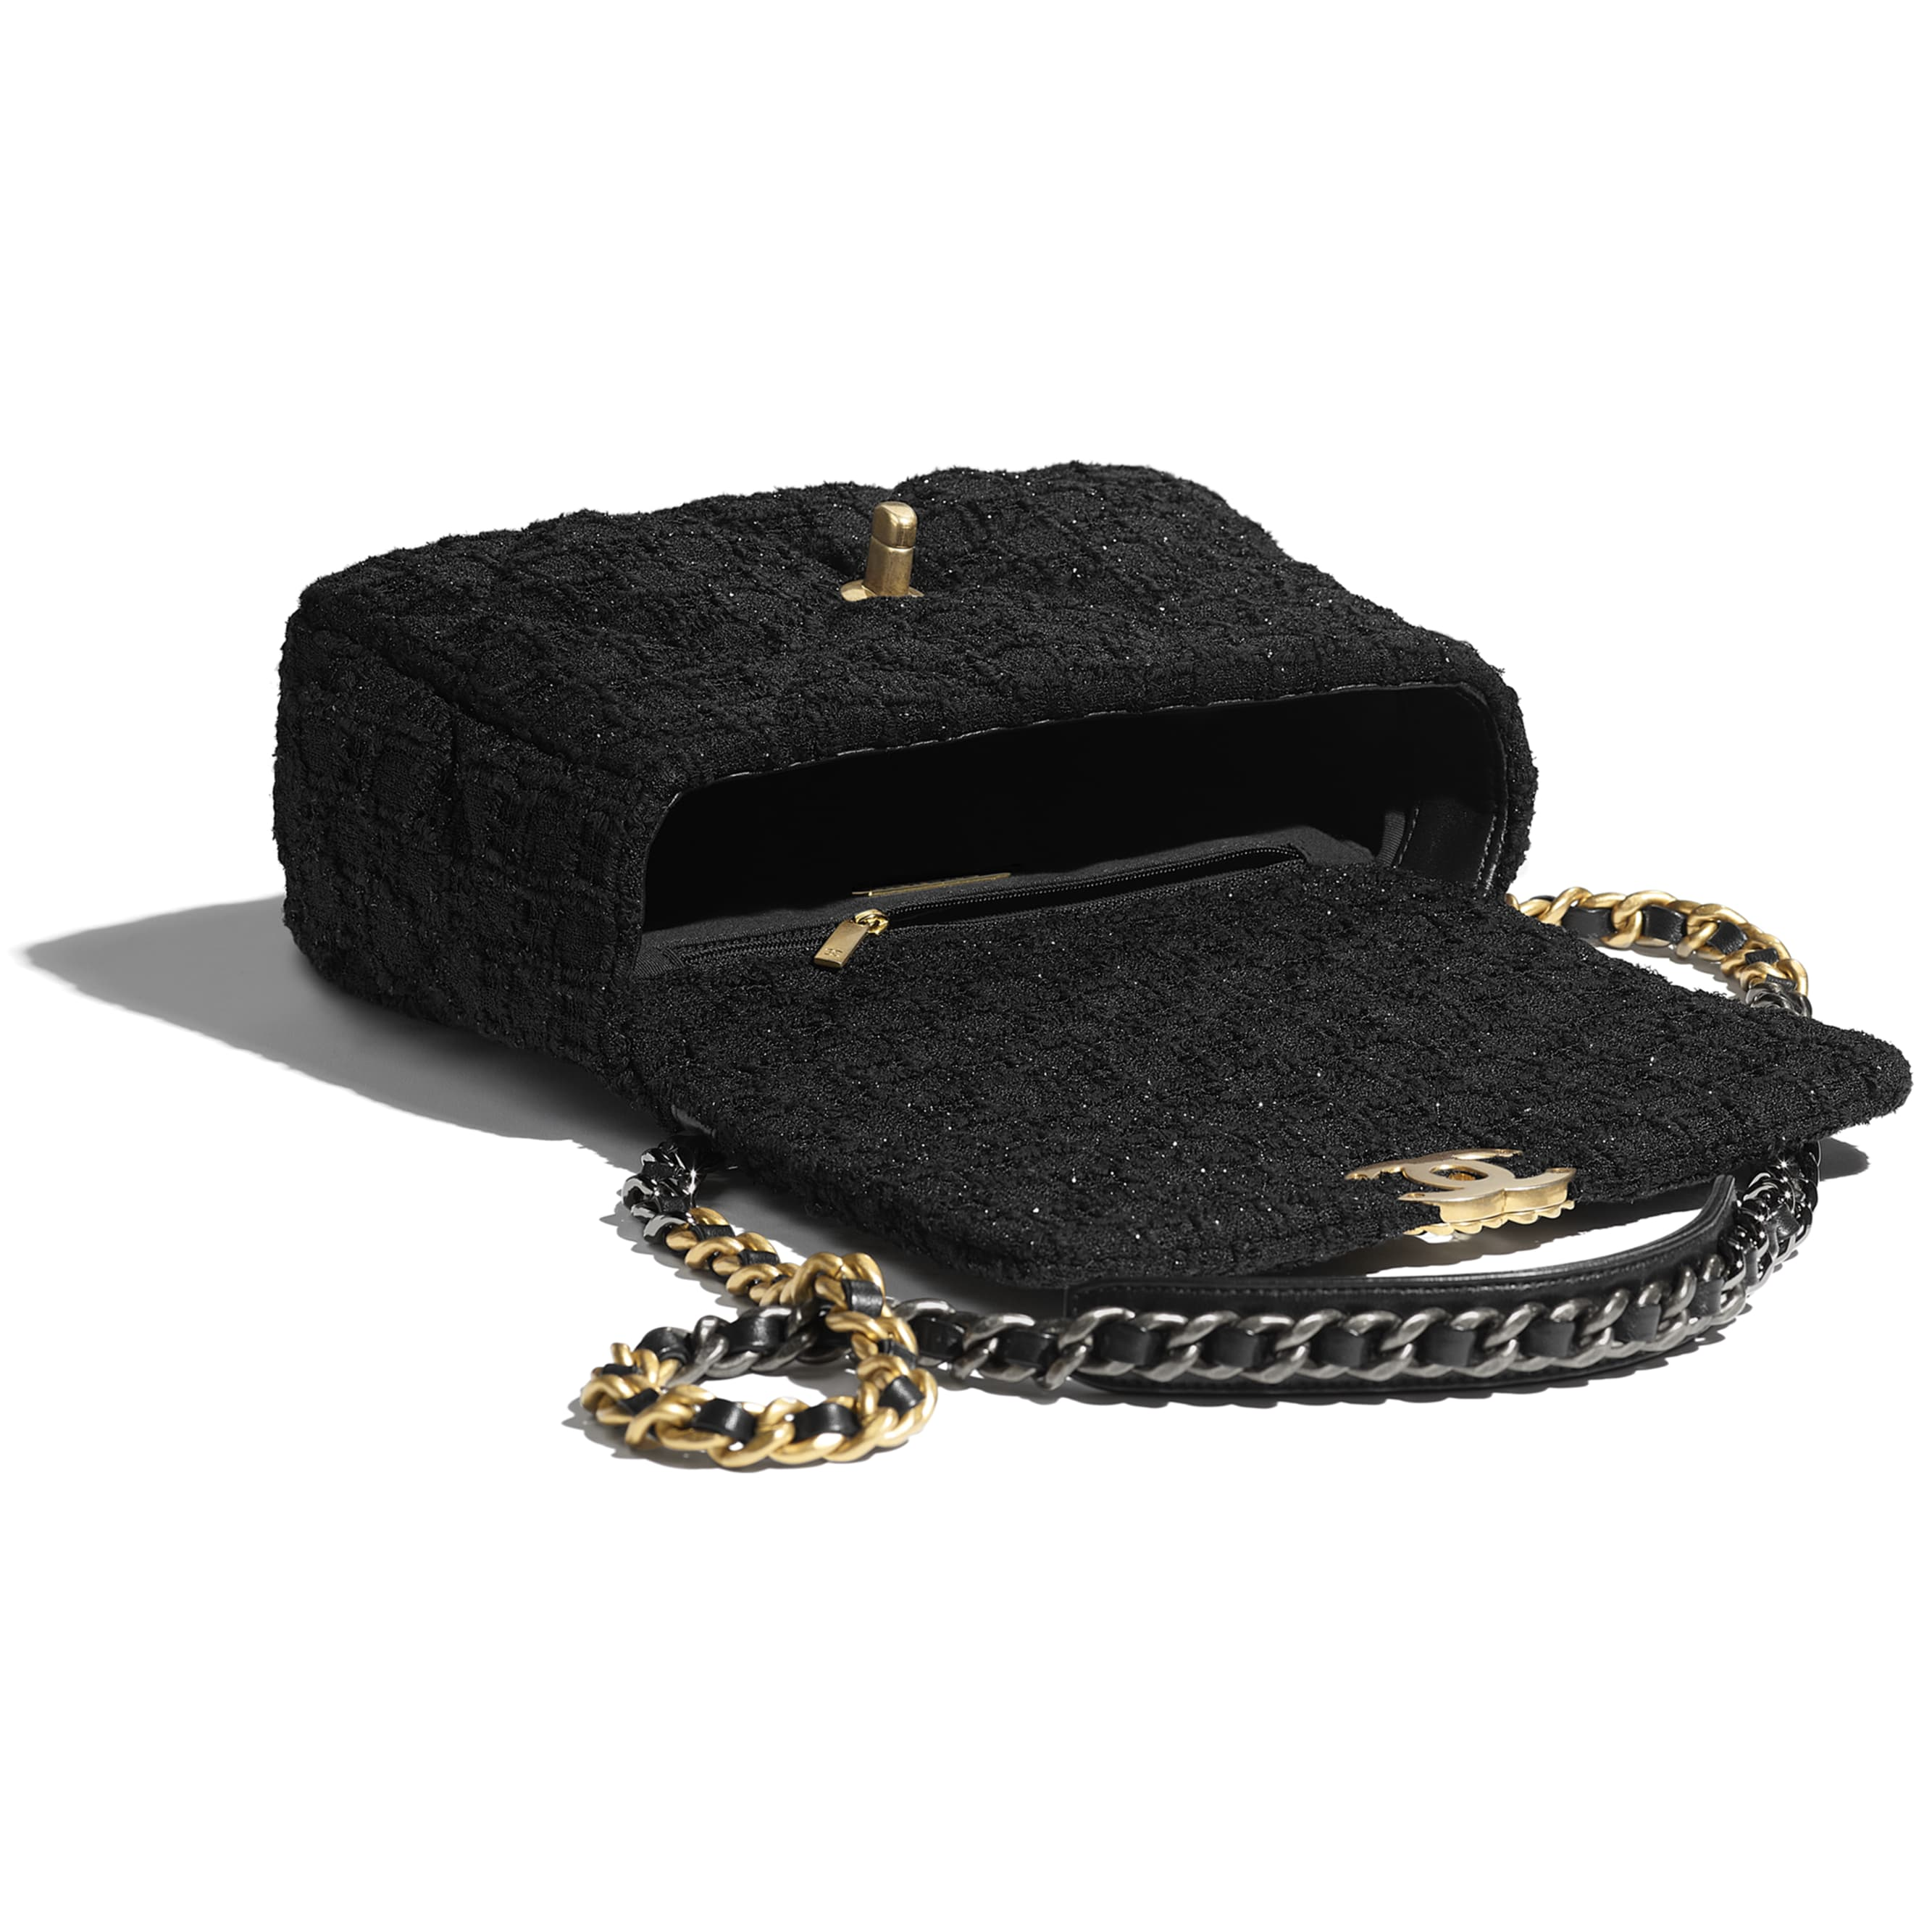 CHANEL 19 Handbag - Black - Tweed, Gold-Tone, Silver-Tone & Ruthenium-Finish Metal - CHANEL - Other view - see standard sized version